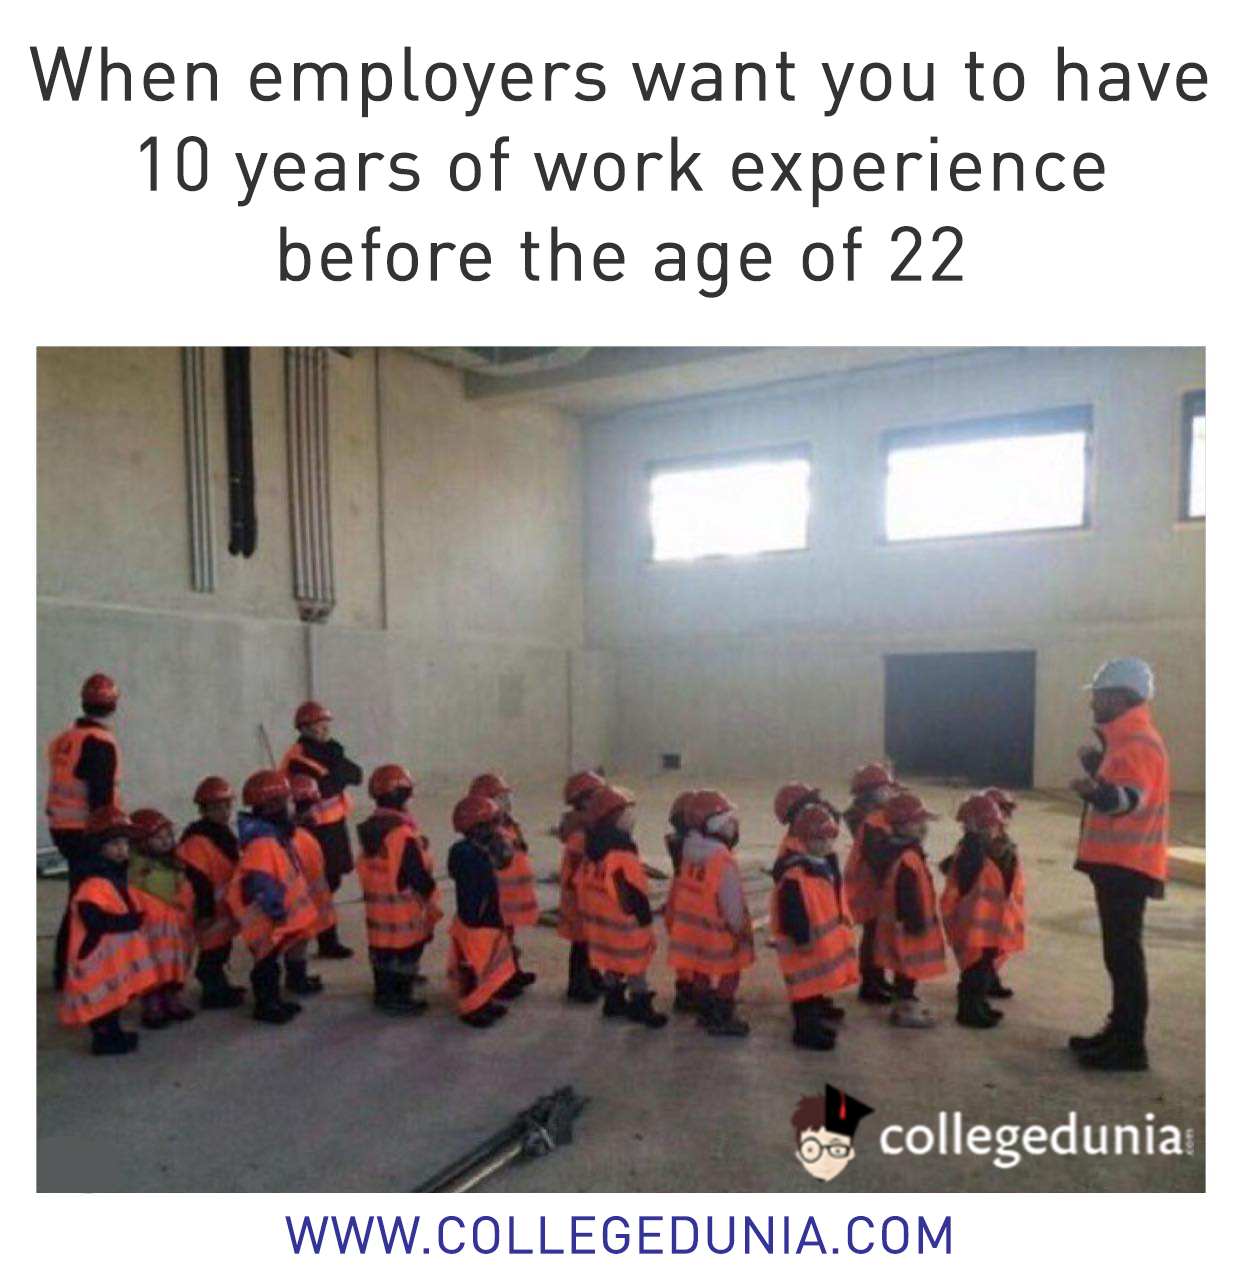 College Memes Meme When Employers Want You To Have 10 Years Of Work Experience Before The Age Of 22 College Memes Funny Pictures Memes